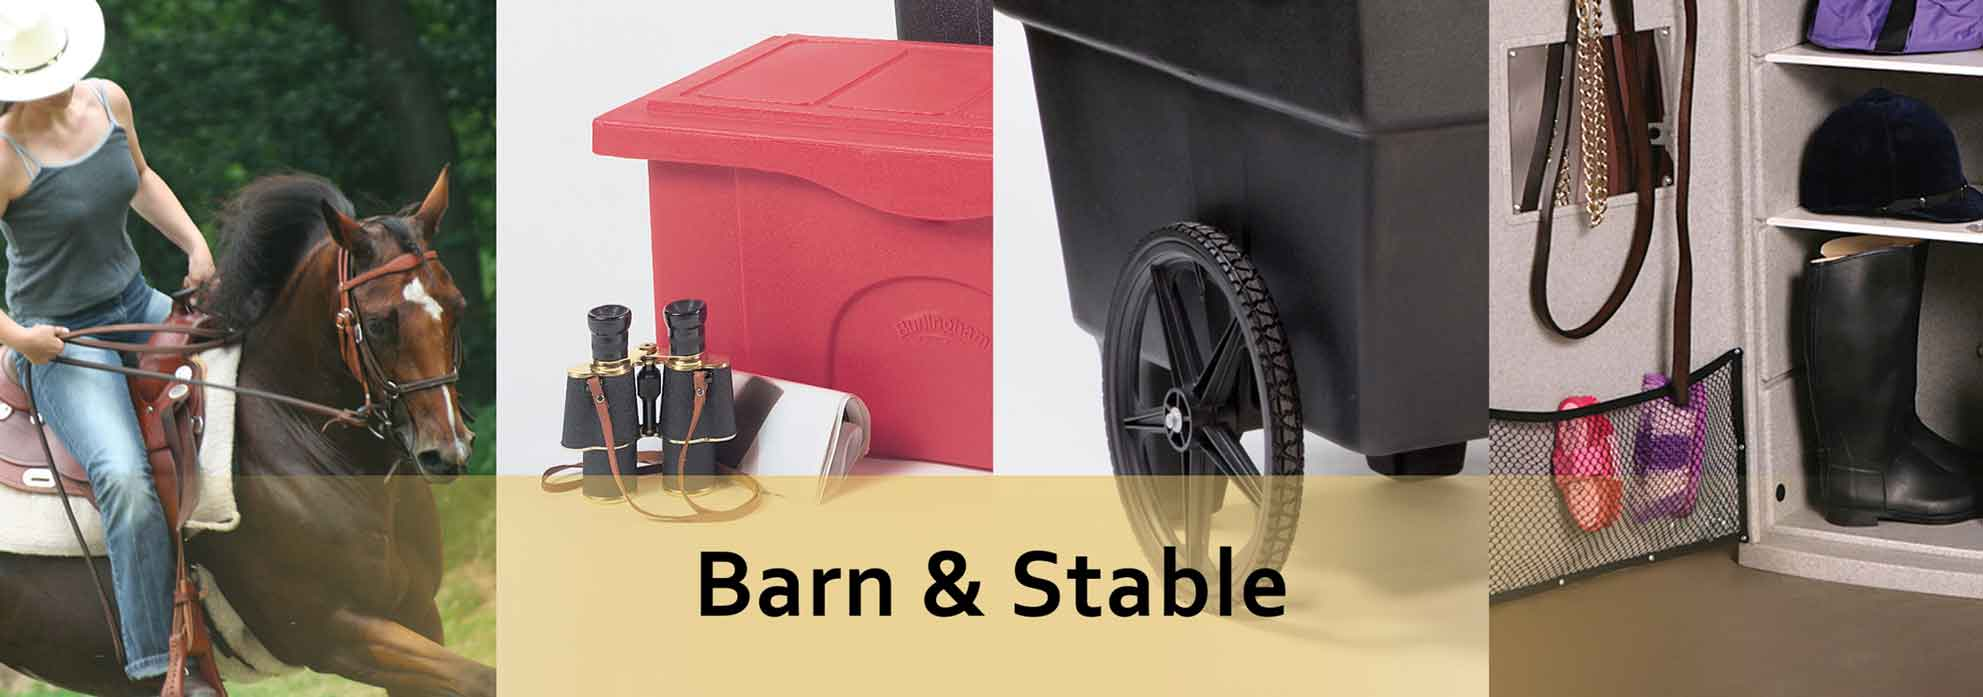 barn and stable equipment